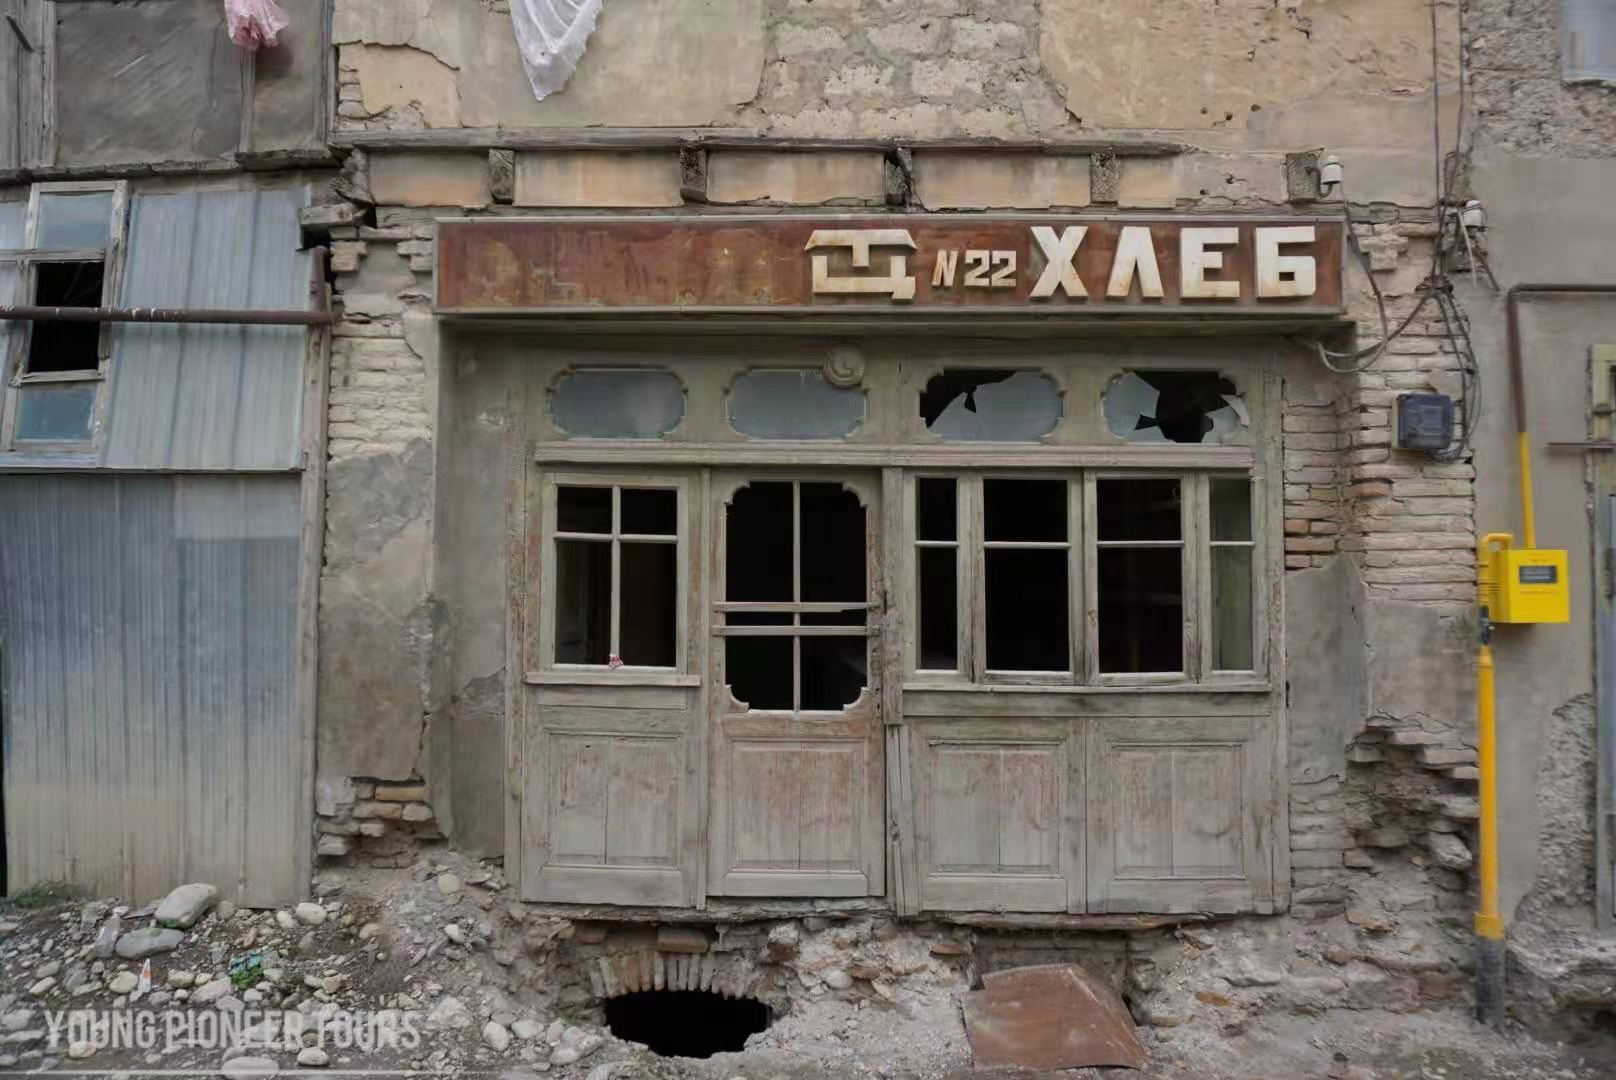 A bakery in ruin after the battles of South Ossetia